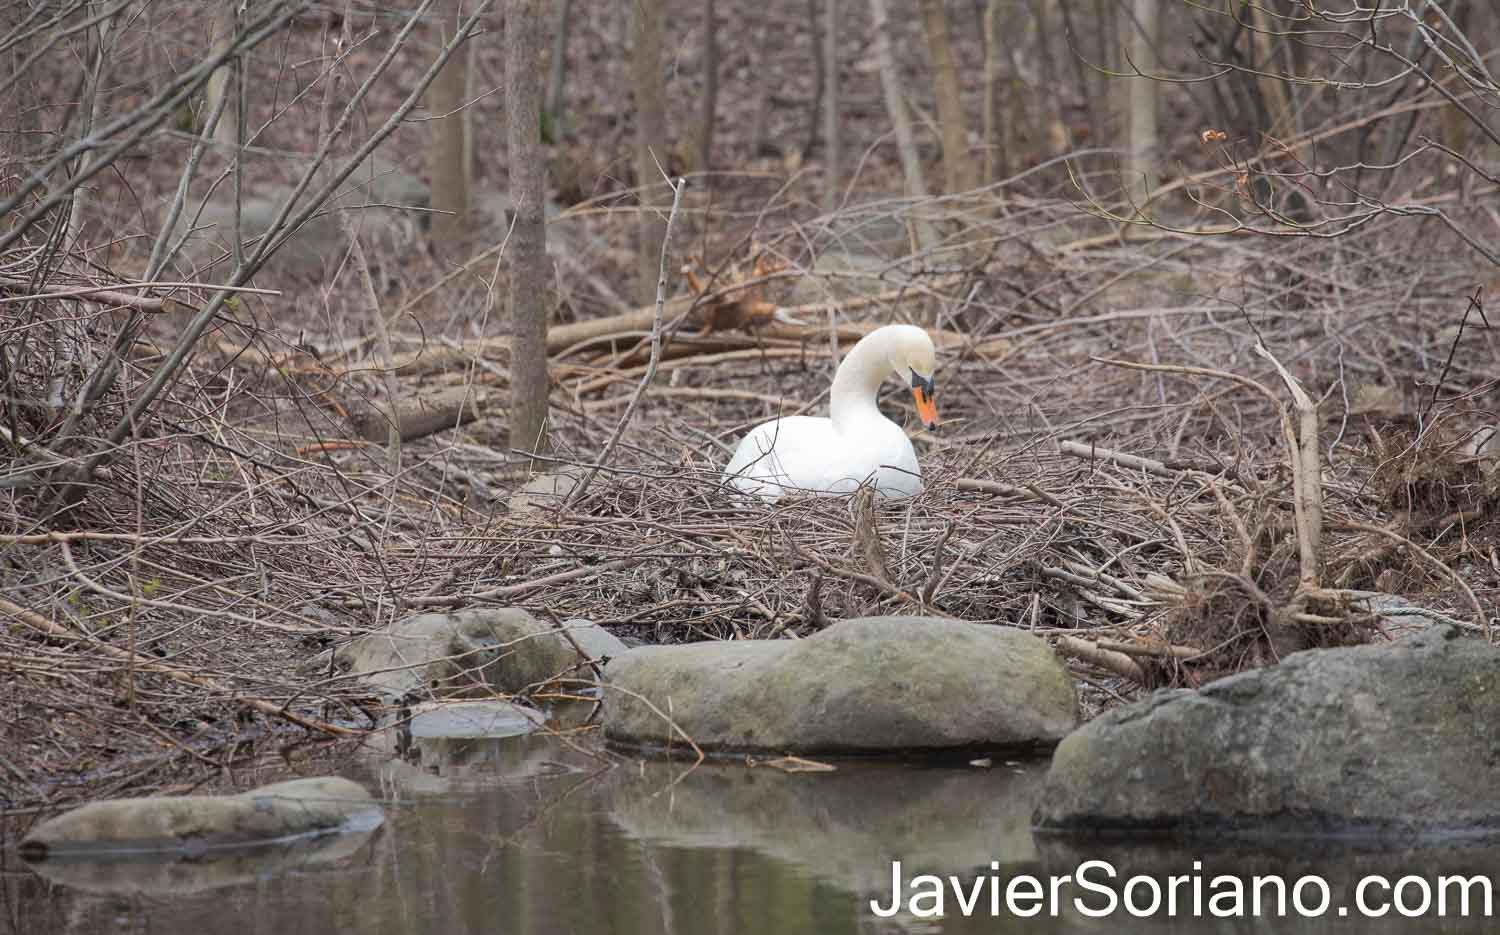 Friday, April 2, 2021. Brooklyn, New York City - Mute swan incubating their eggs in Prospect Park.  Photo by Javier Soriano/JavierSoriano.com